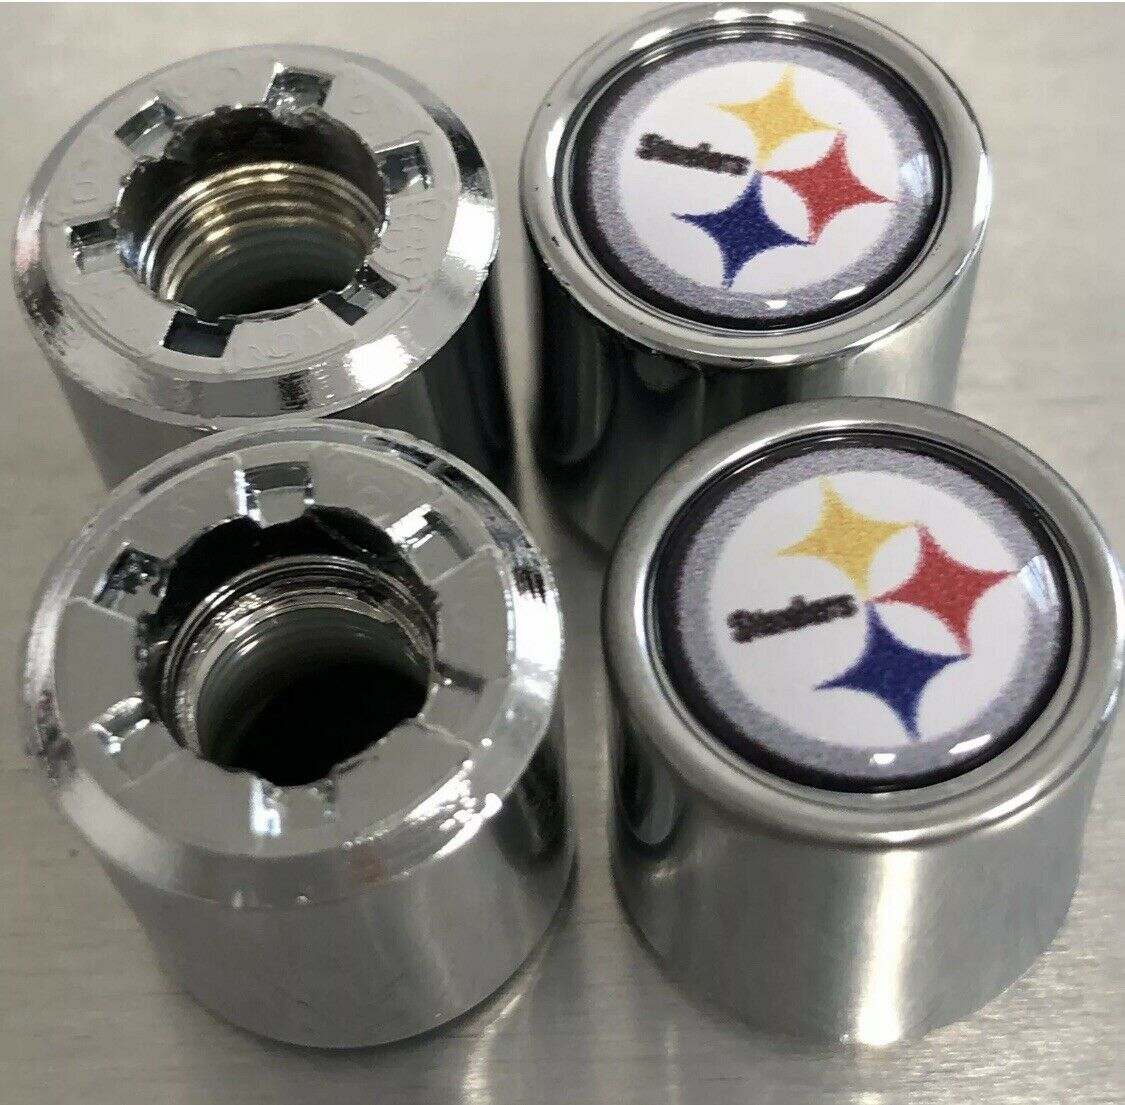 Oakland Raiders Auto Parts 4-Pack Sport Metal Car Wheel Tire Valve Stem Caps with US Rugby Team Logo